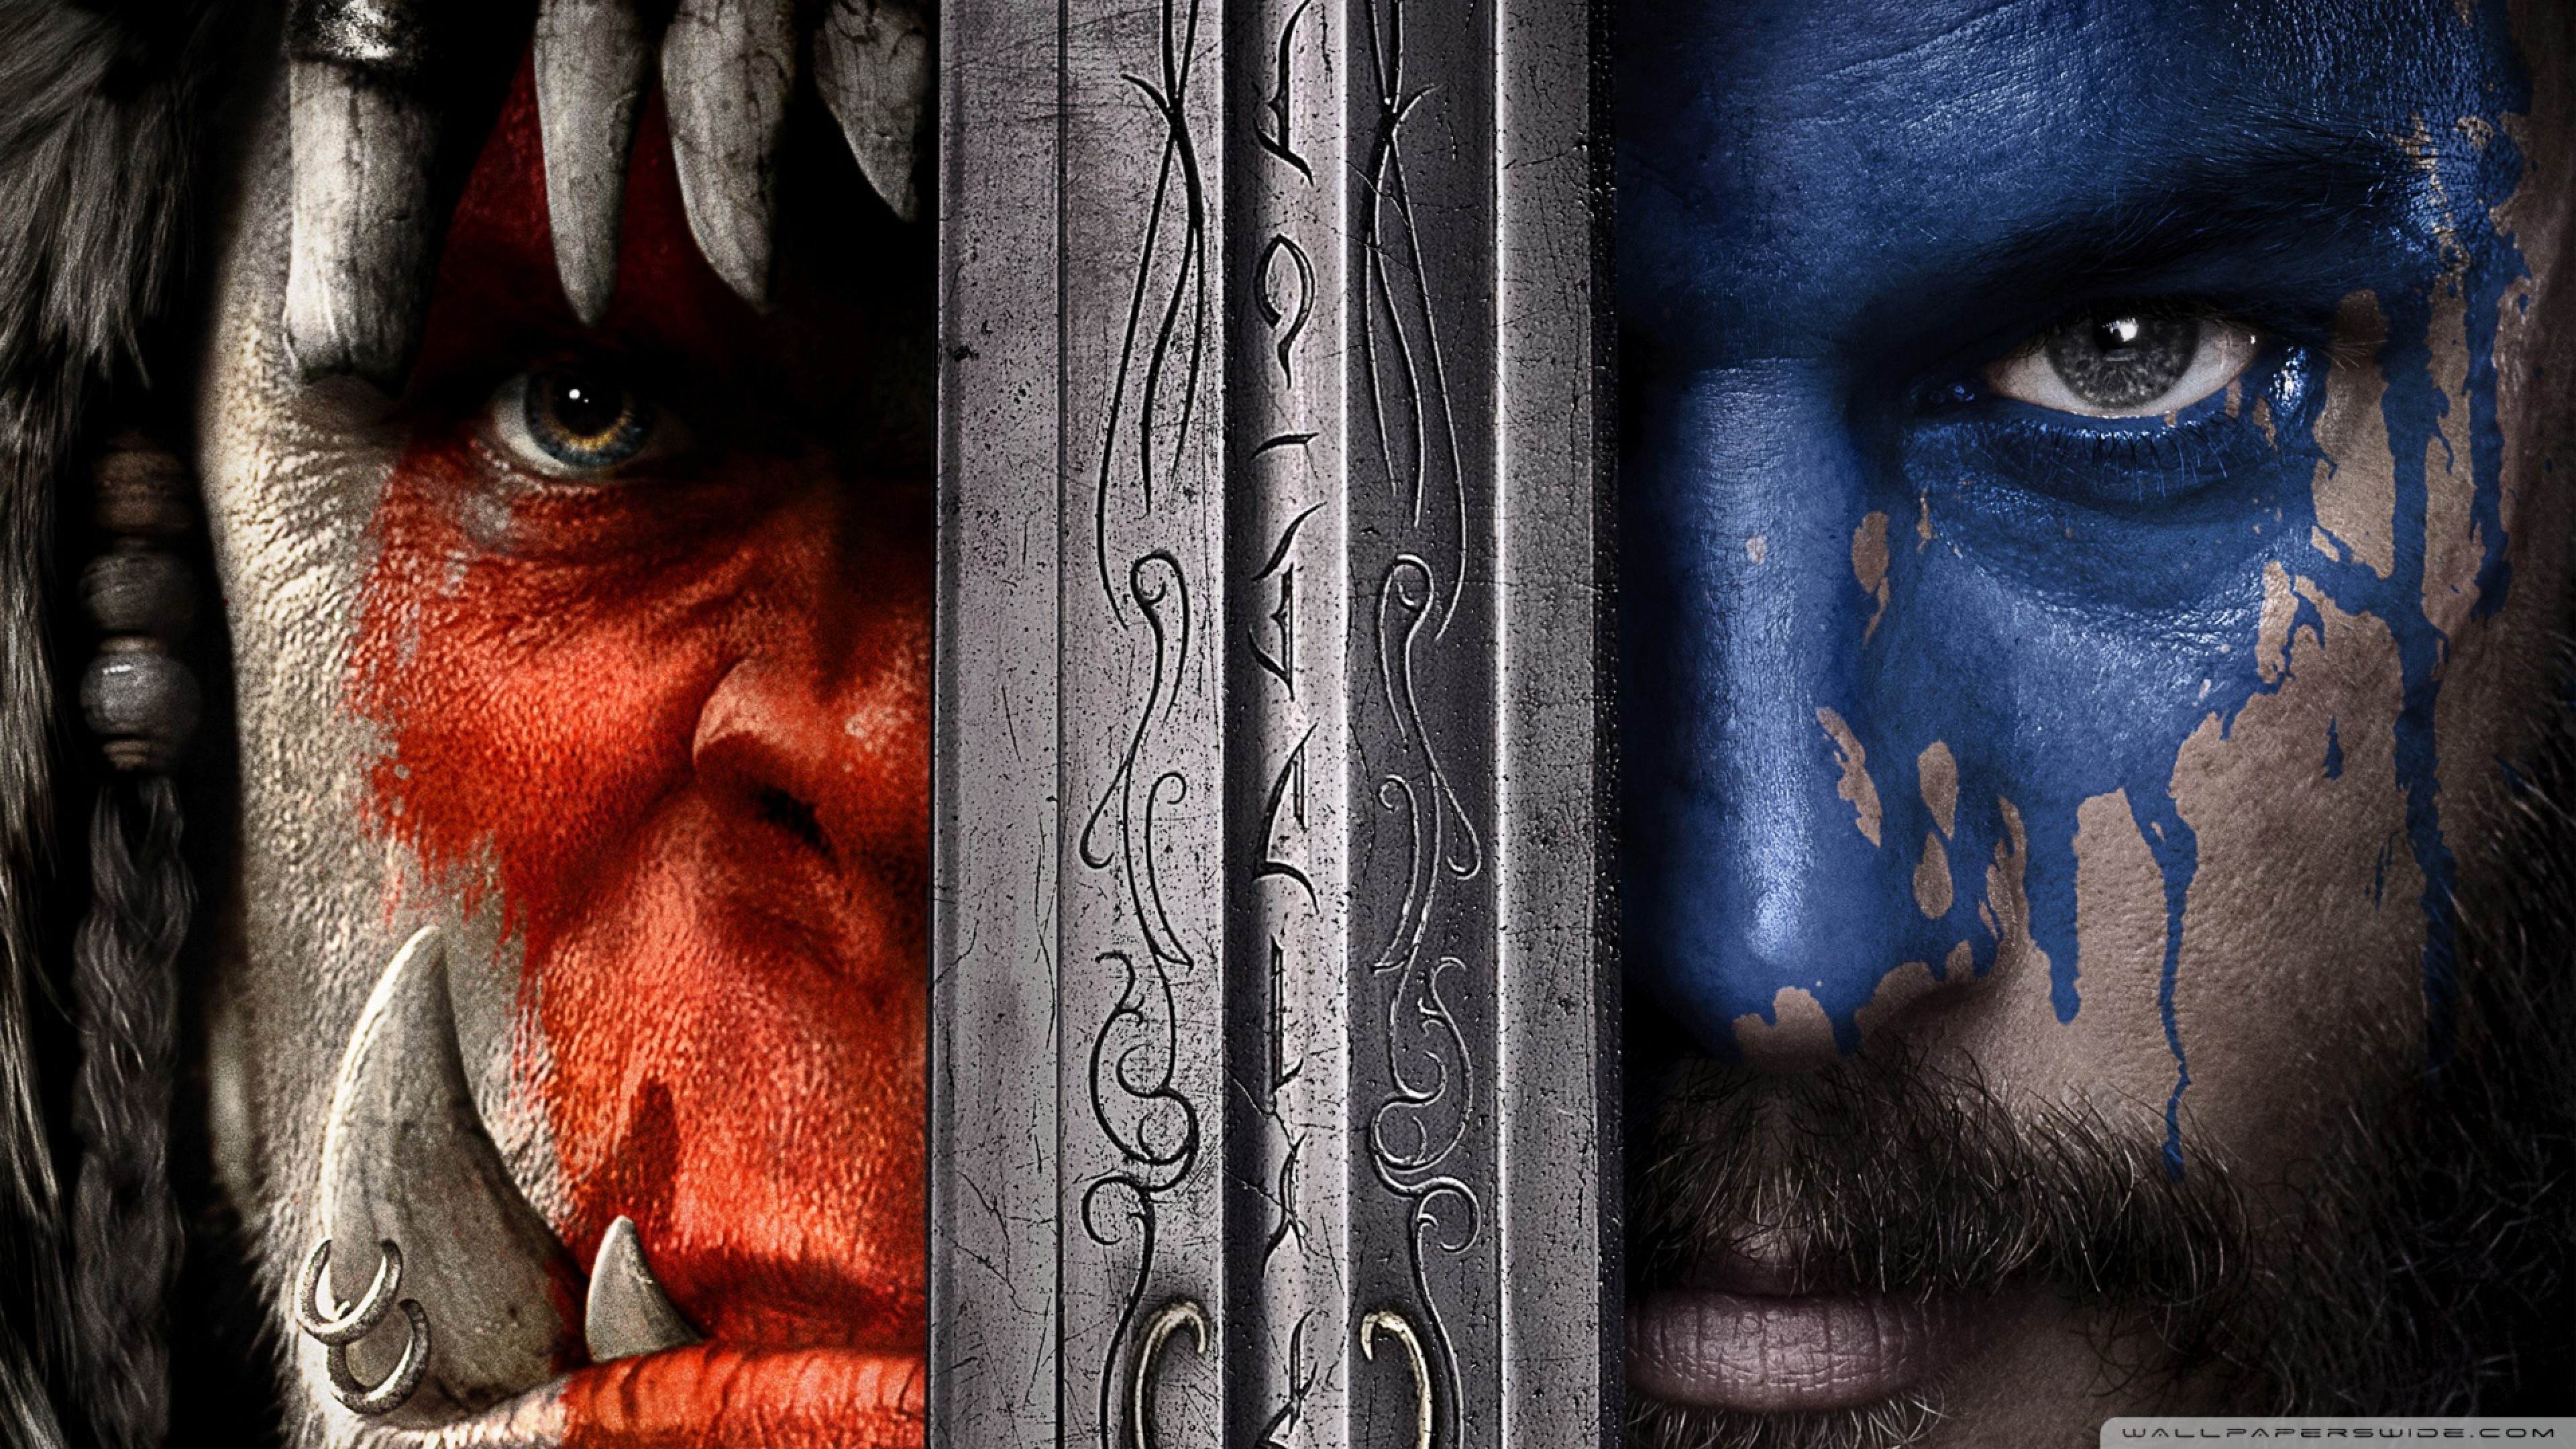 World of Warcraft Movie Hd Wallpaper for Desktop and Mobiles